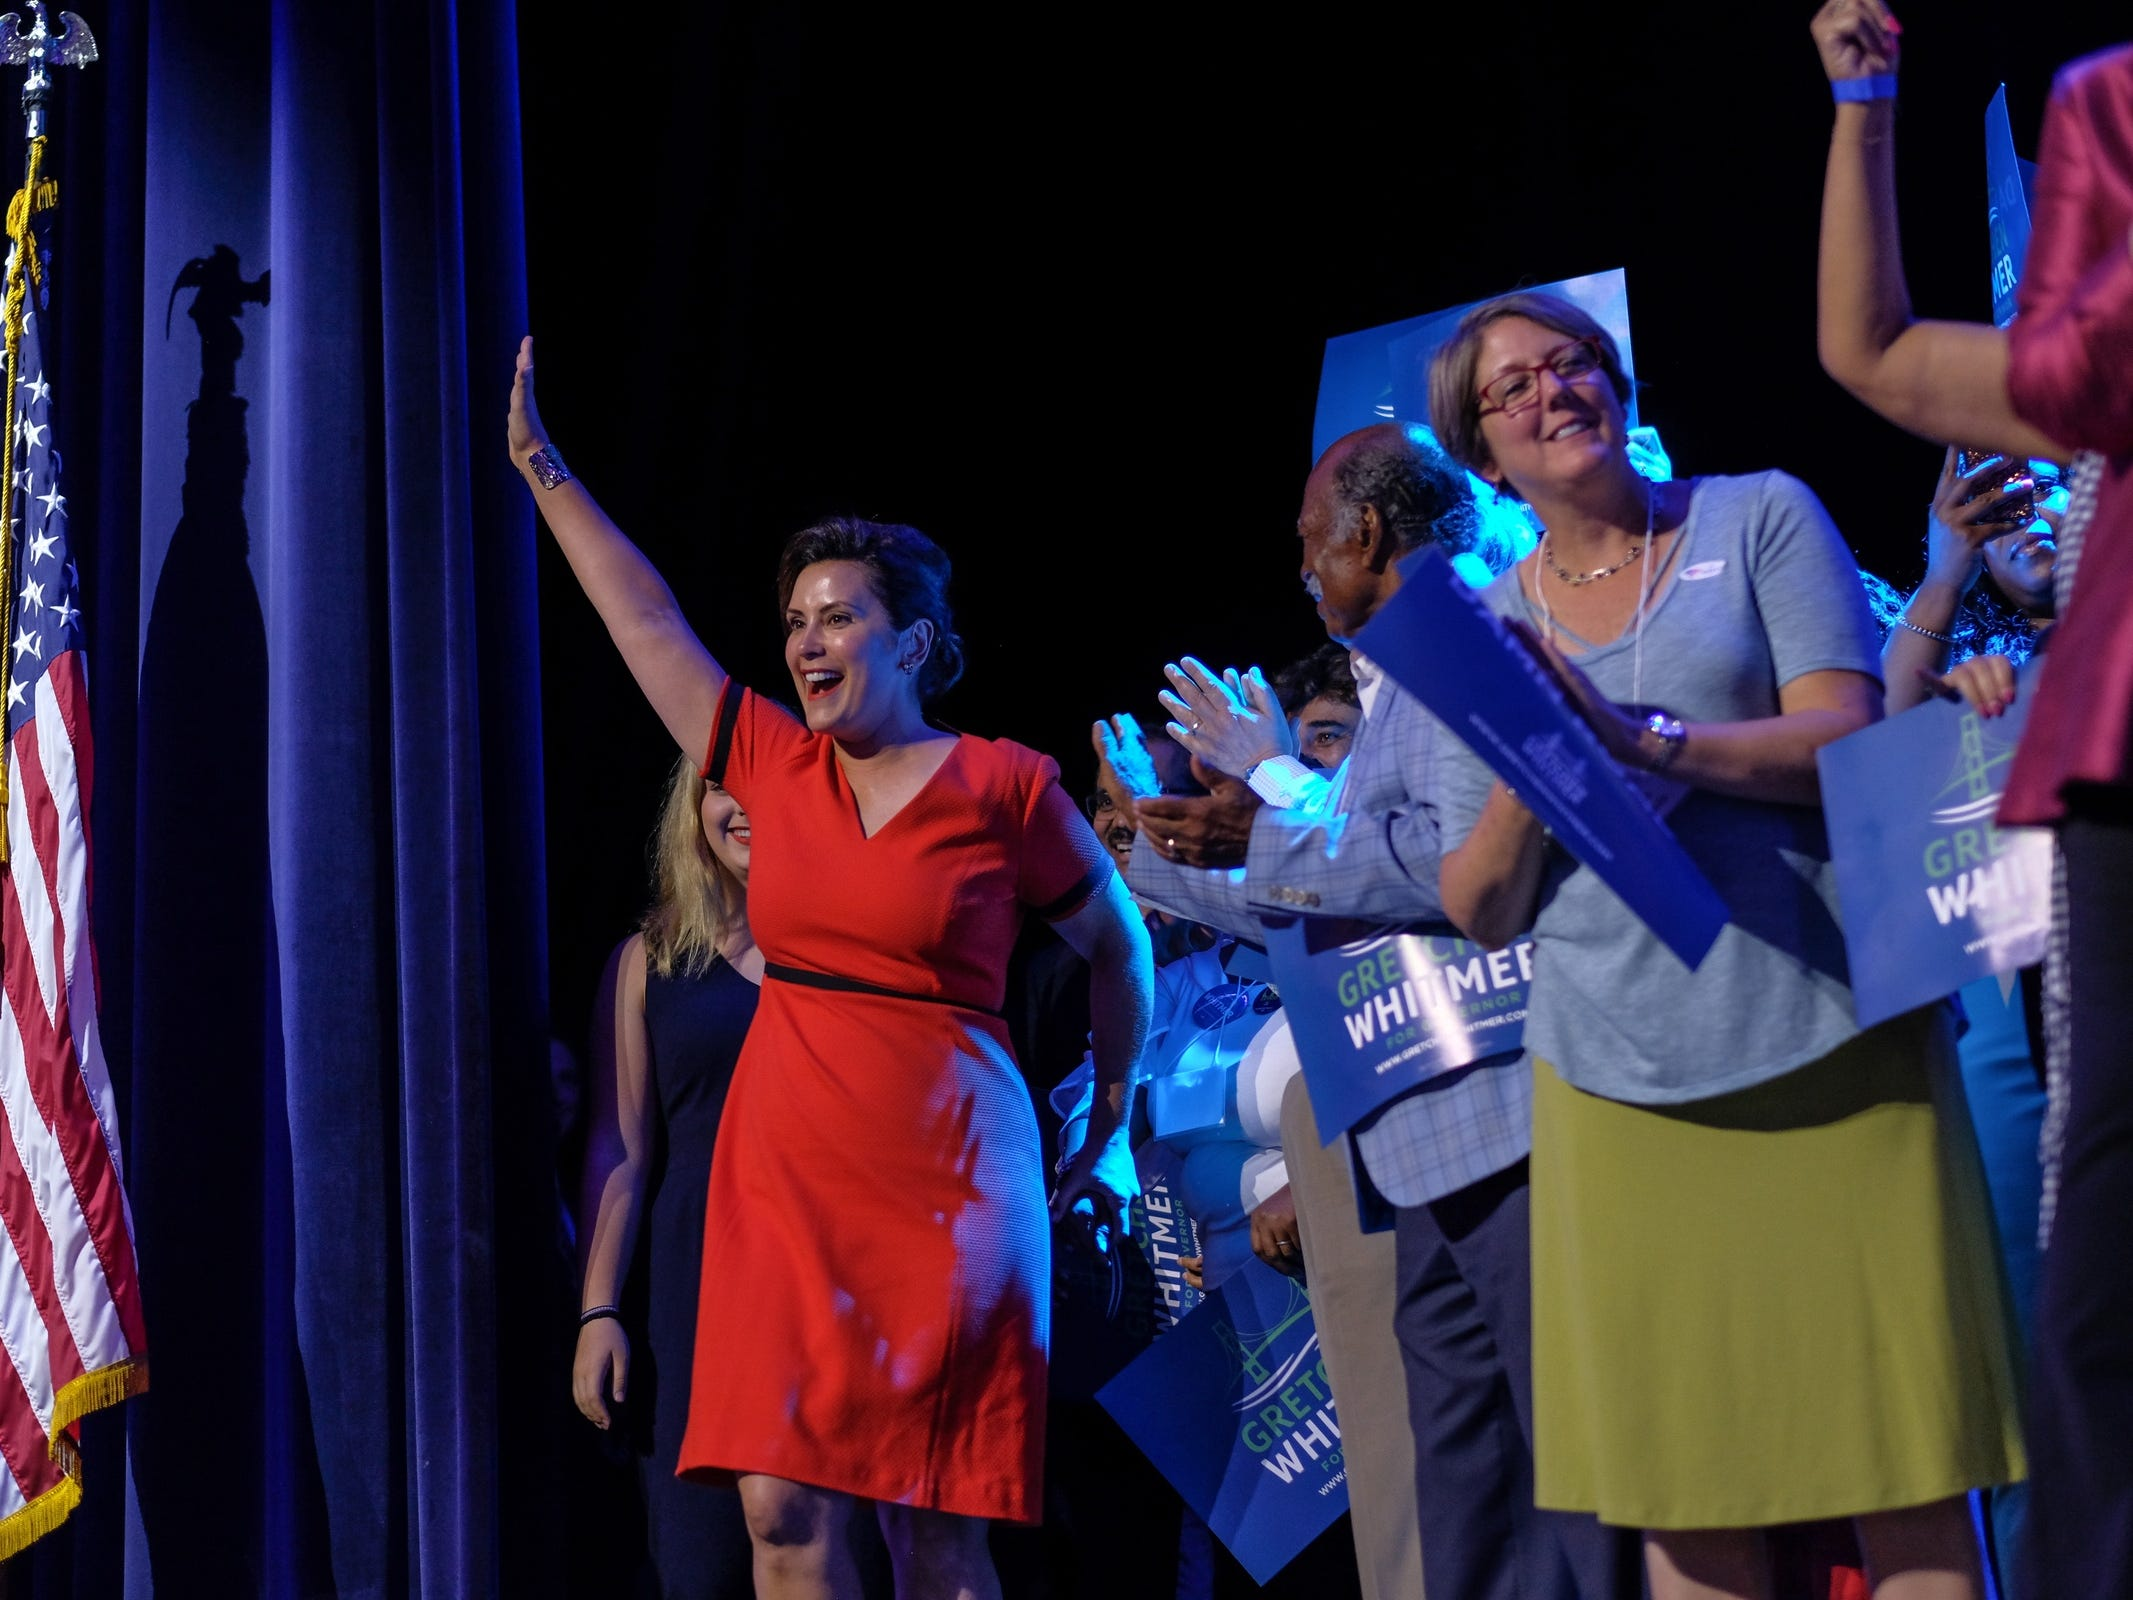 Democratic gubernatorial candidate Gretchen Whitmer takes the stage after winning Michigan's primary race on Tuesday, August 7, 2018 during the election night party at the MotorCity Casino in Detroit.